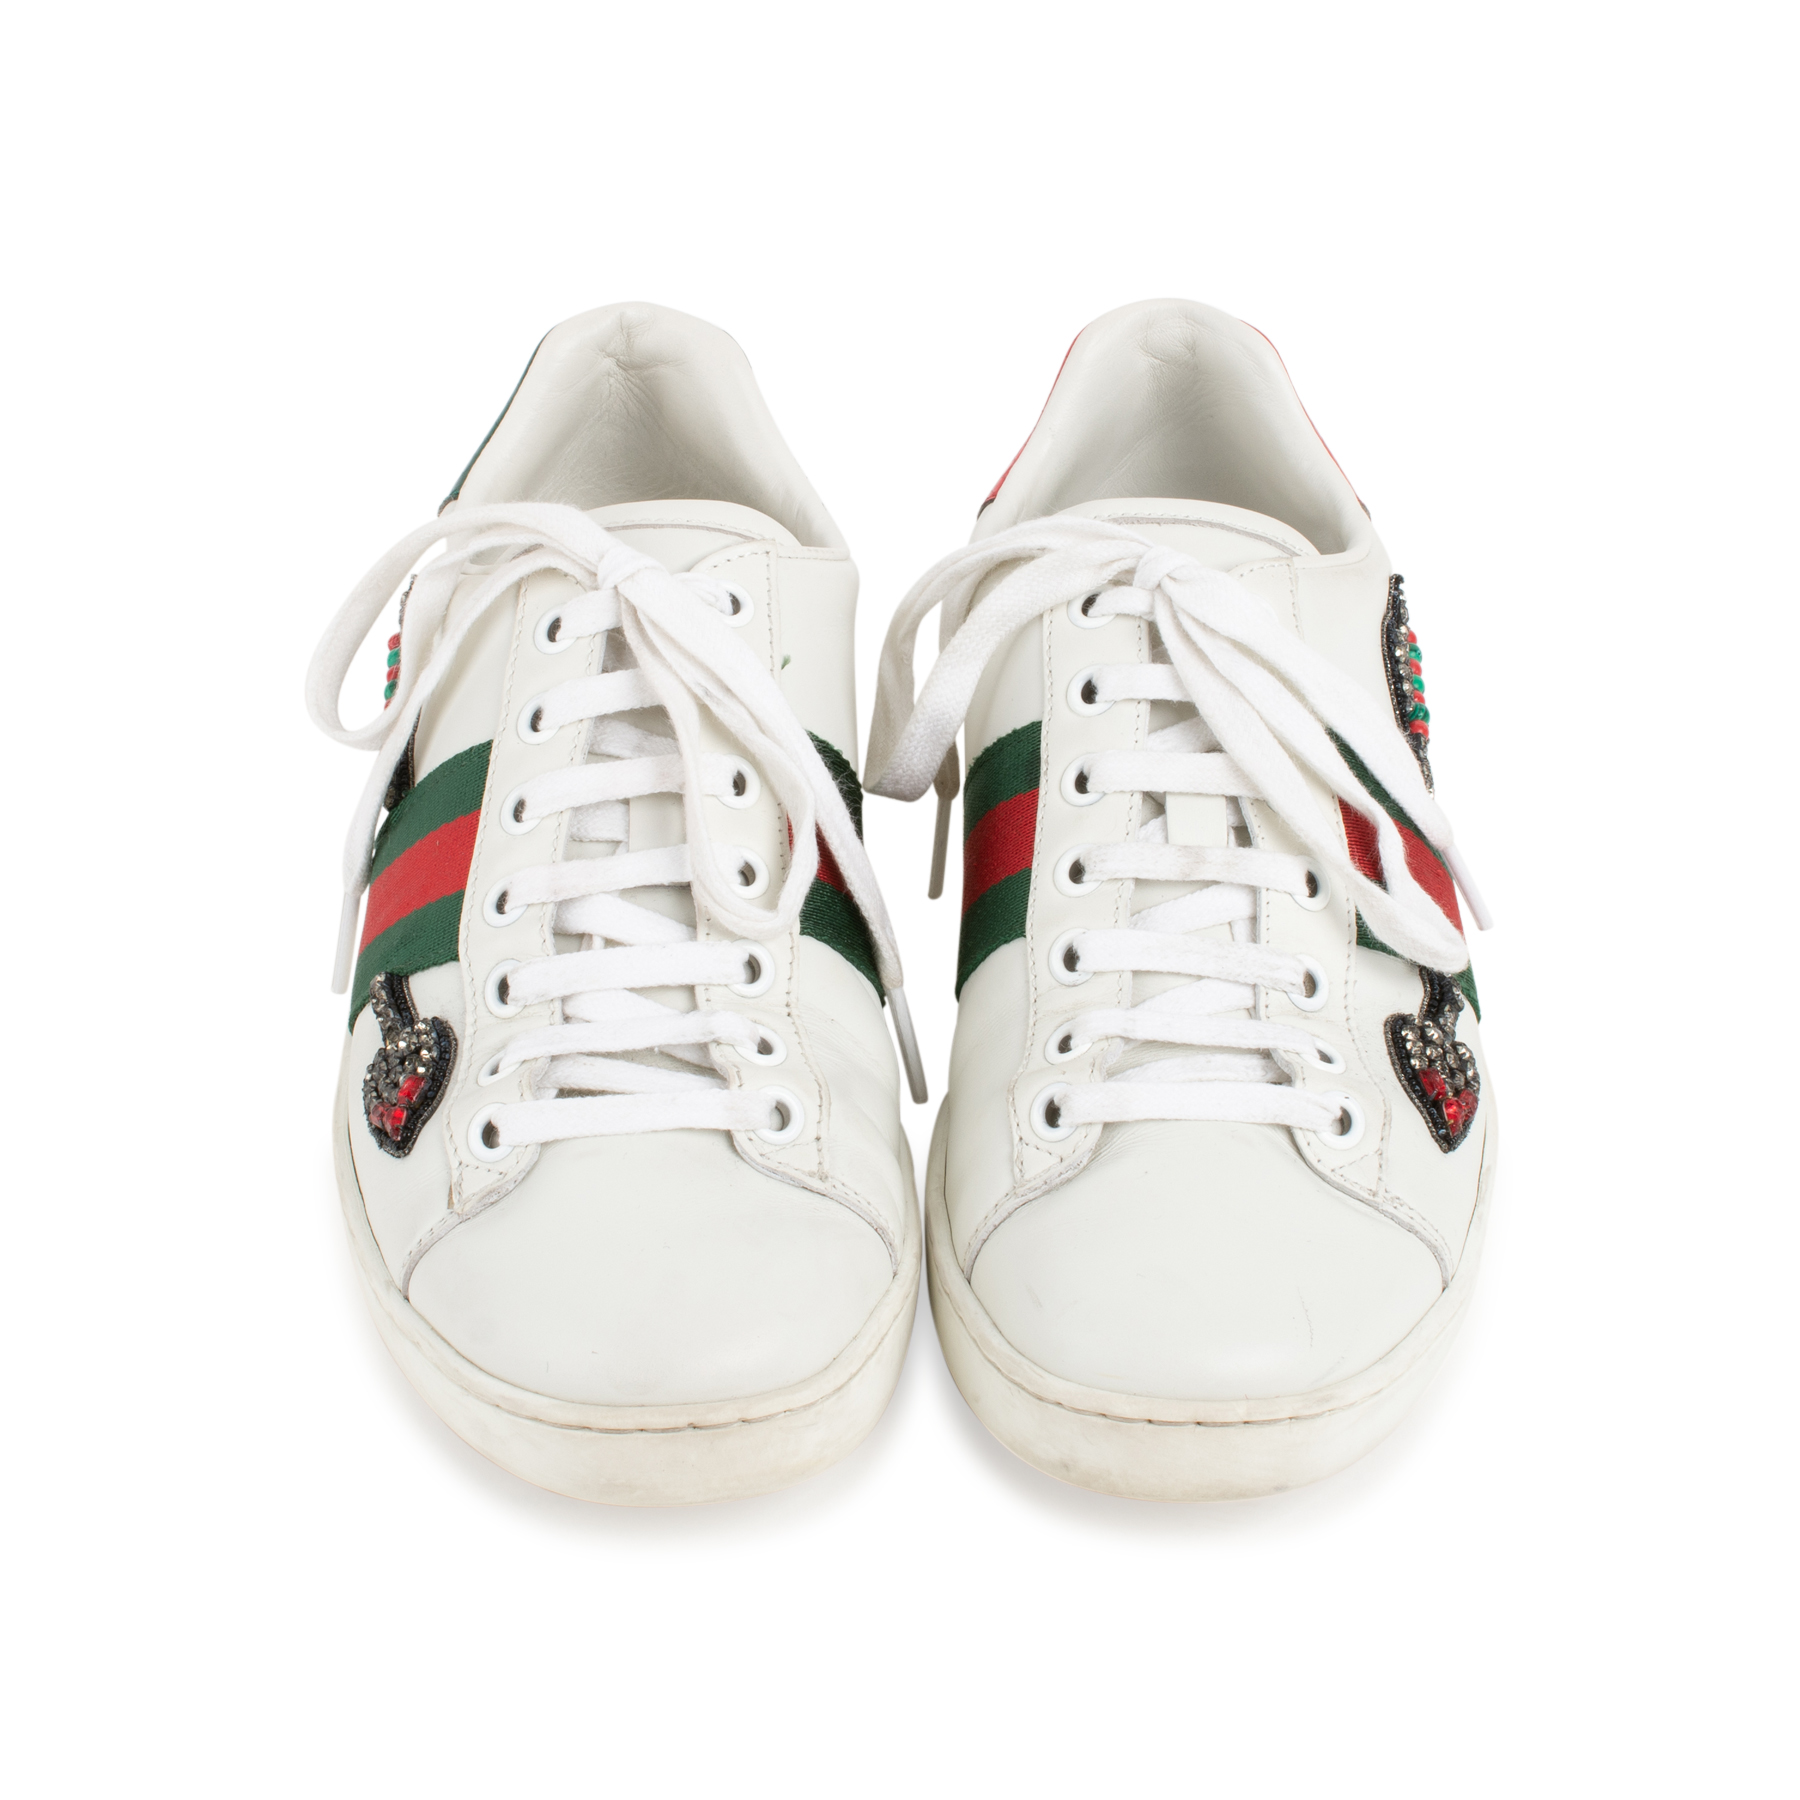 8dc67c74e Authentic Second Hand Gucci Arrow Ace Embroidered Sneakers (PSS-255-00017)  - THE FIFTH COLLECTION